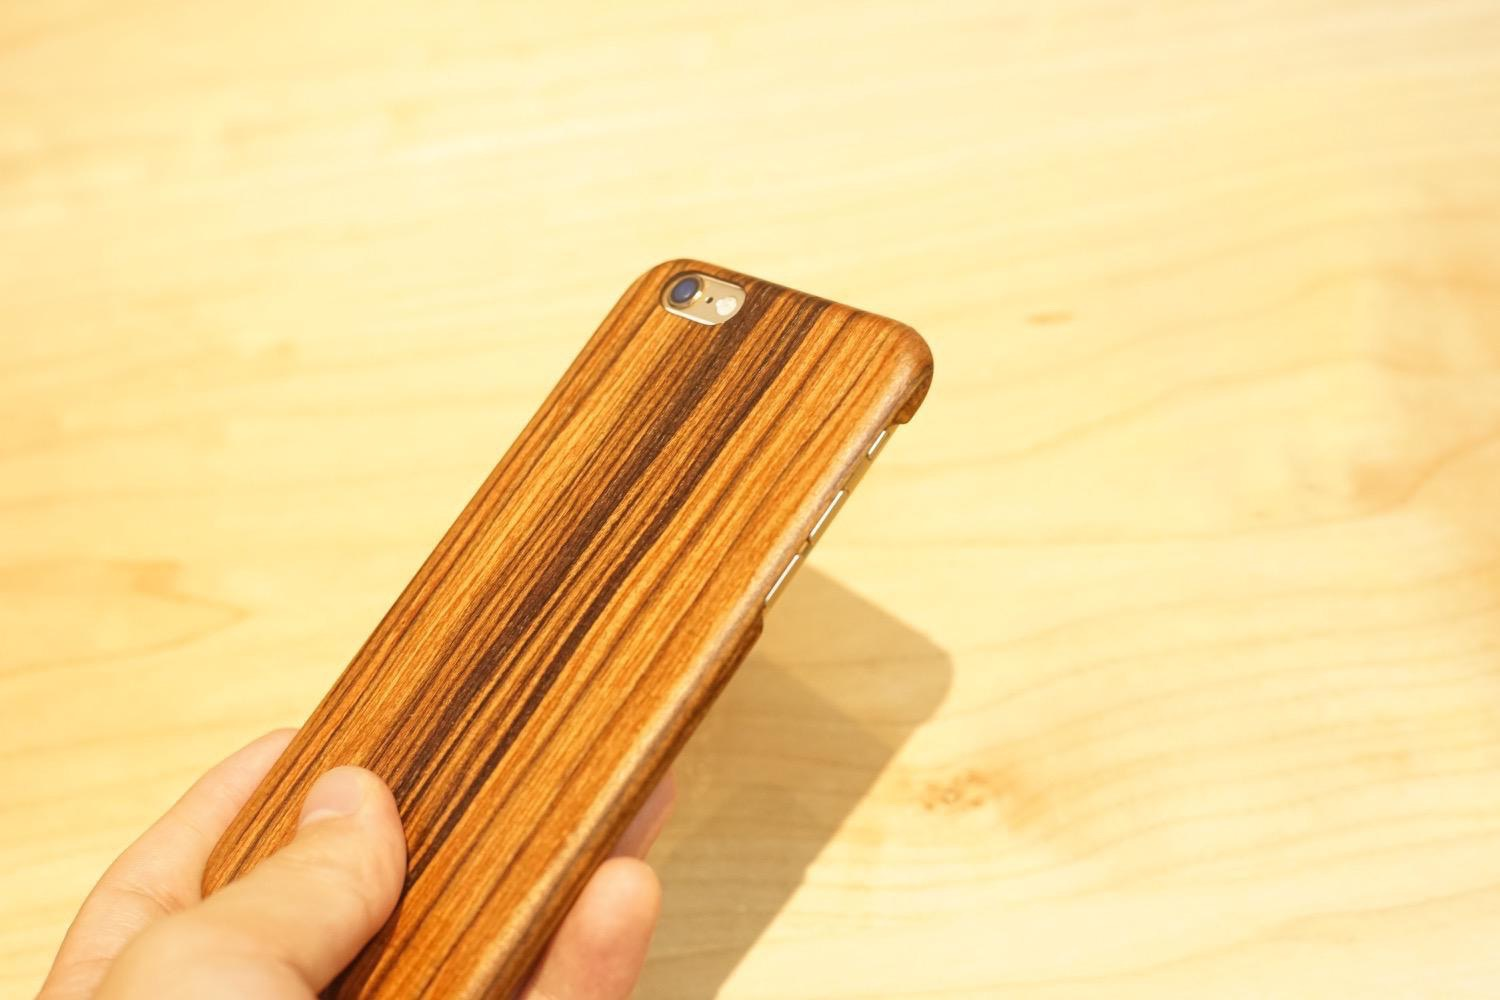 Pitaka iphone6 case9